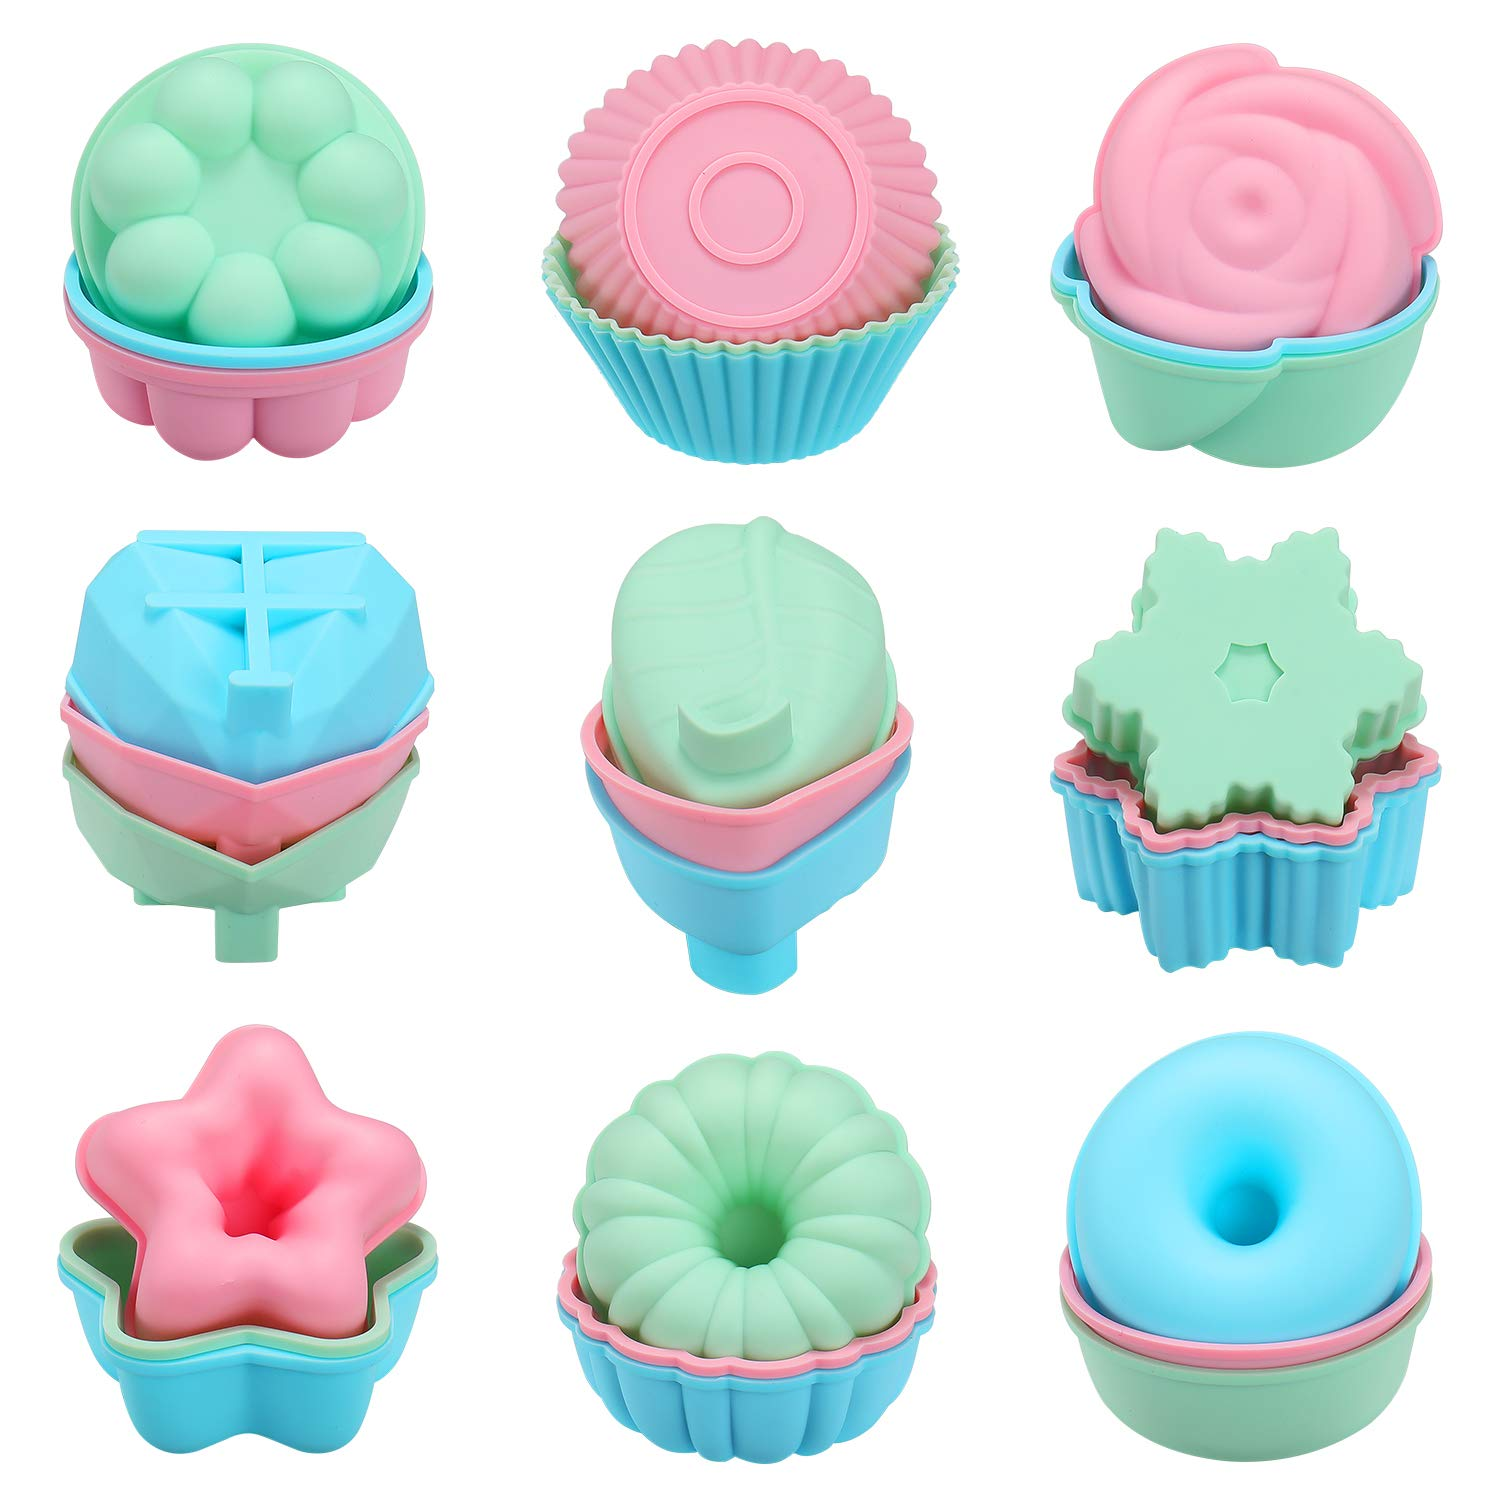 Houswill 27 Pcs Reusable Silicone Cupcake Baking Cups /Muffin and Cupcake , Silicone Cupcake Liners, Non-Stick Muffin Cups Molds, Including Round, Donut, -9 Shape / Flower Food Grade Silicone by houswill